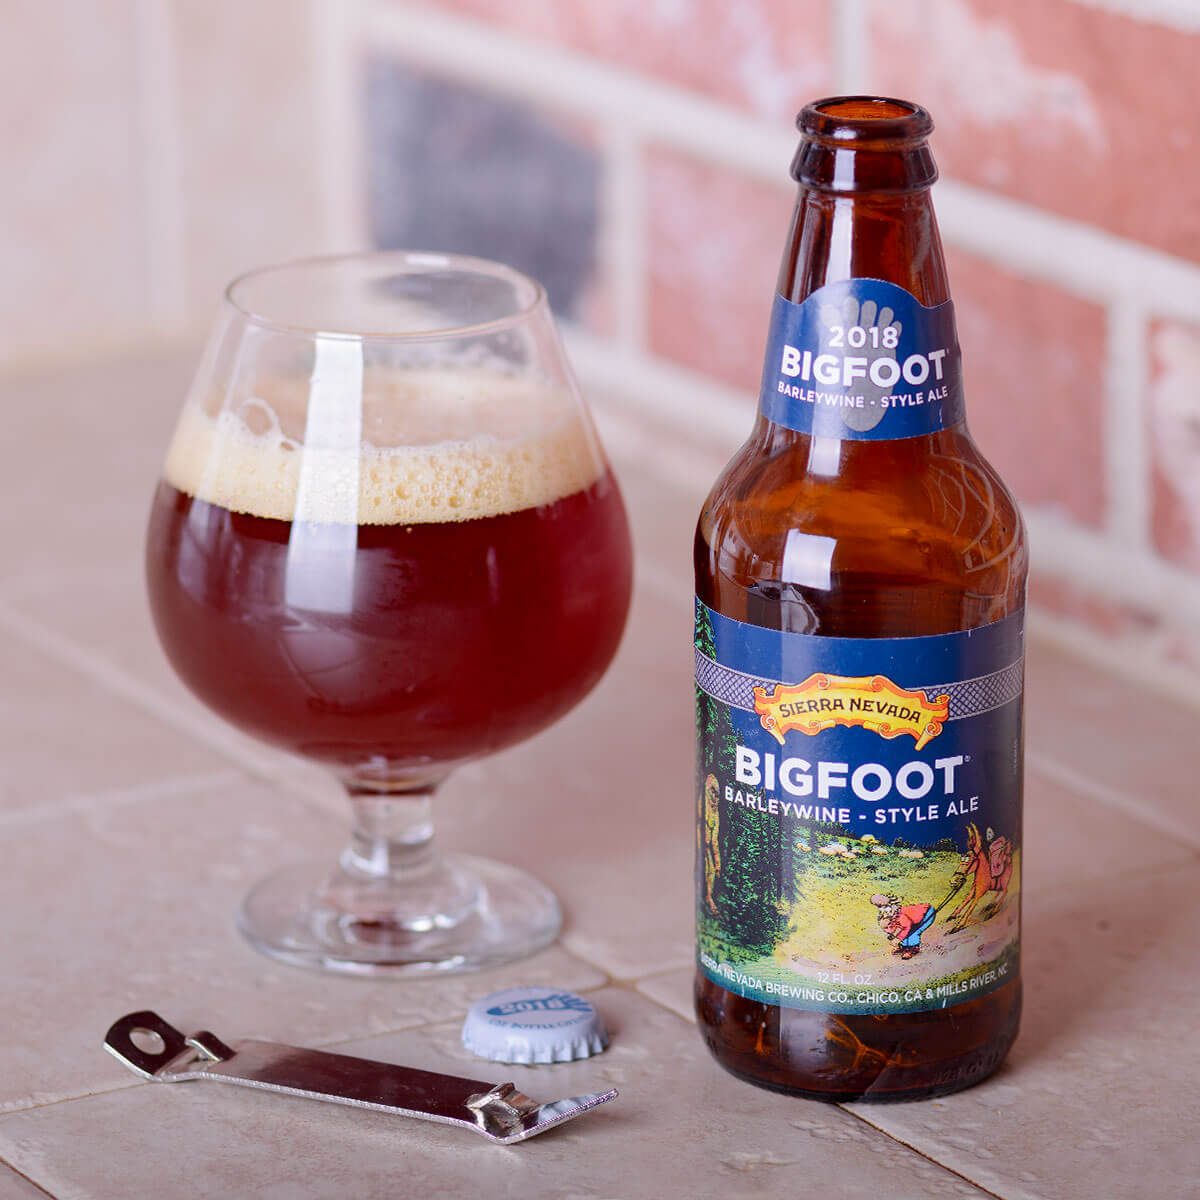 Bigfoot Barleywine Style Ale is an American Barleywine by Sierra Nevada Brewing Co. that blends piney and herbal hops with biscuit, caramel, dark fruit, and booze.